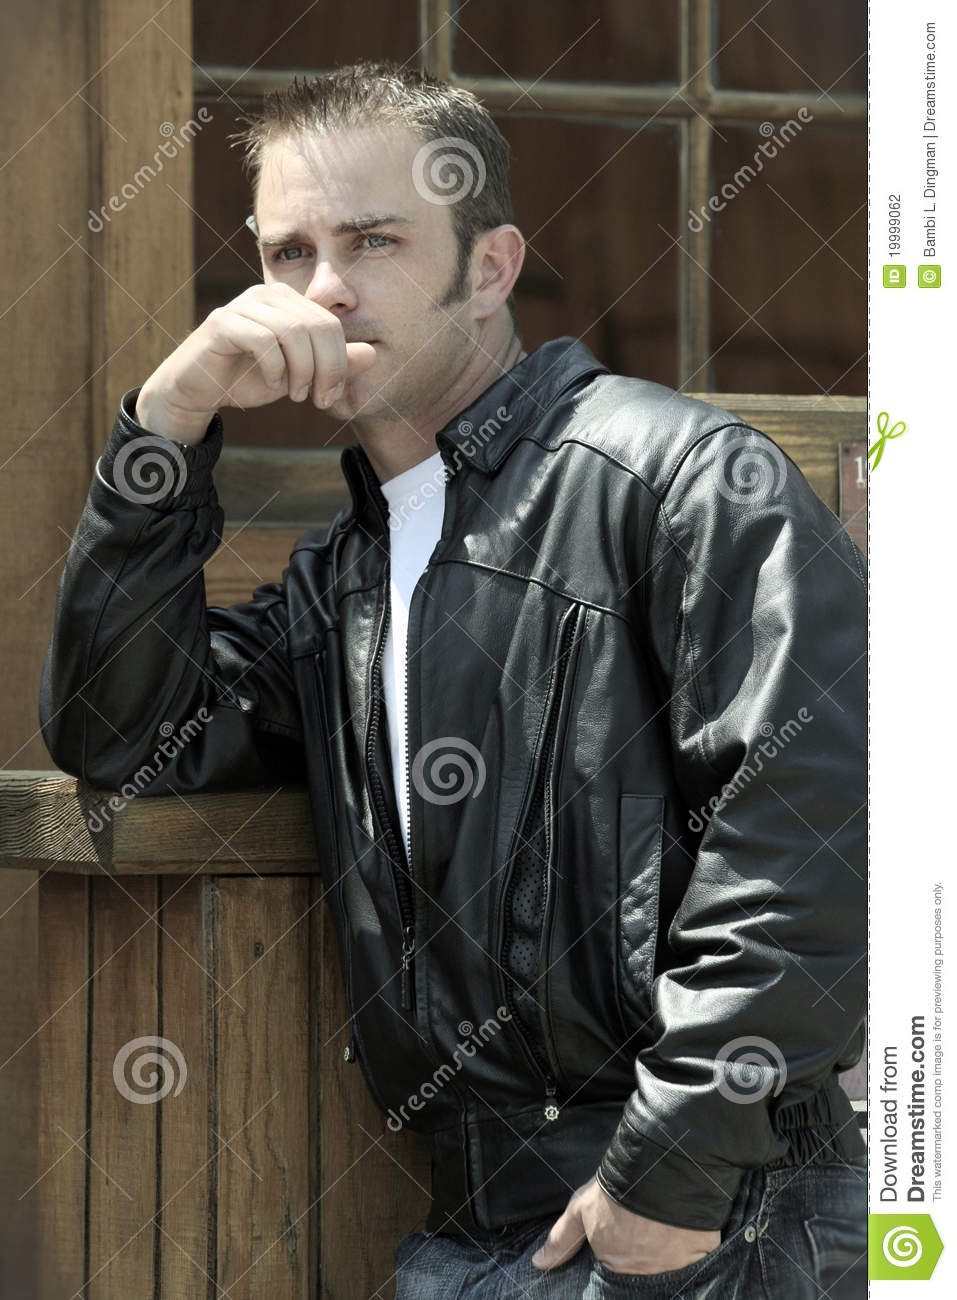 greaser stock photo image of vintage leather jacket 19999062